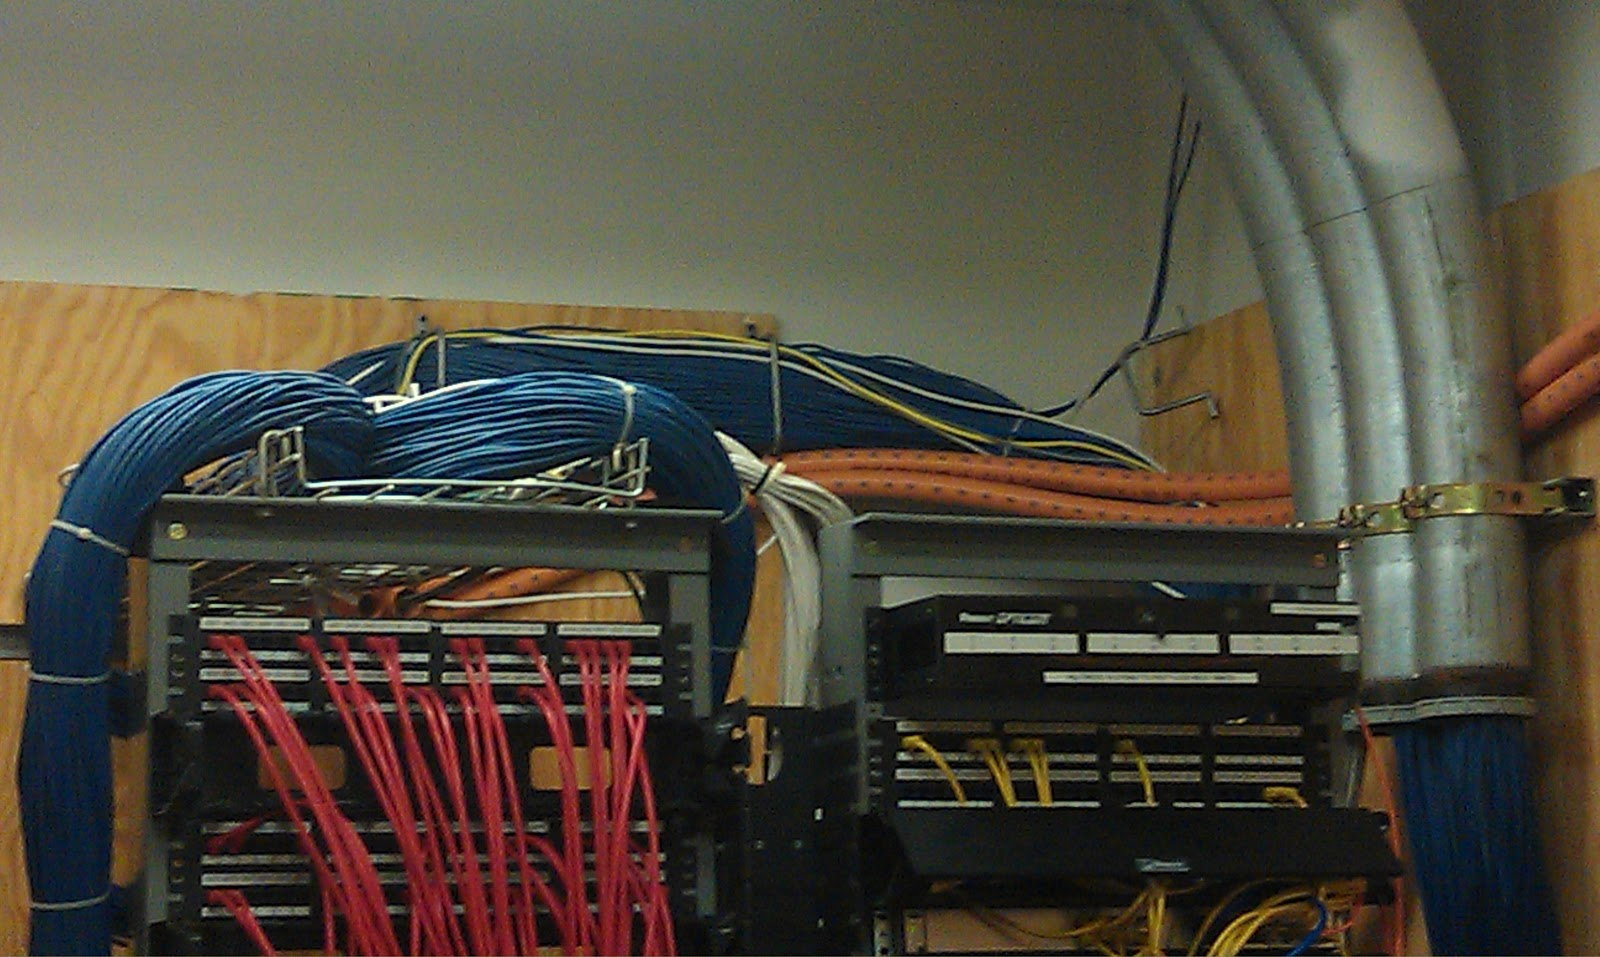 The News Of Network Tour Campus Wiring Closet Mess This Is A Set Pictures Different Closets I Must Say Am Envious Kens Skill To Divine Madness Which That Server Room